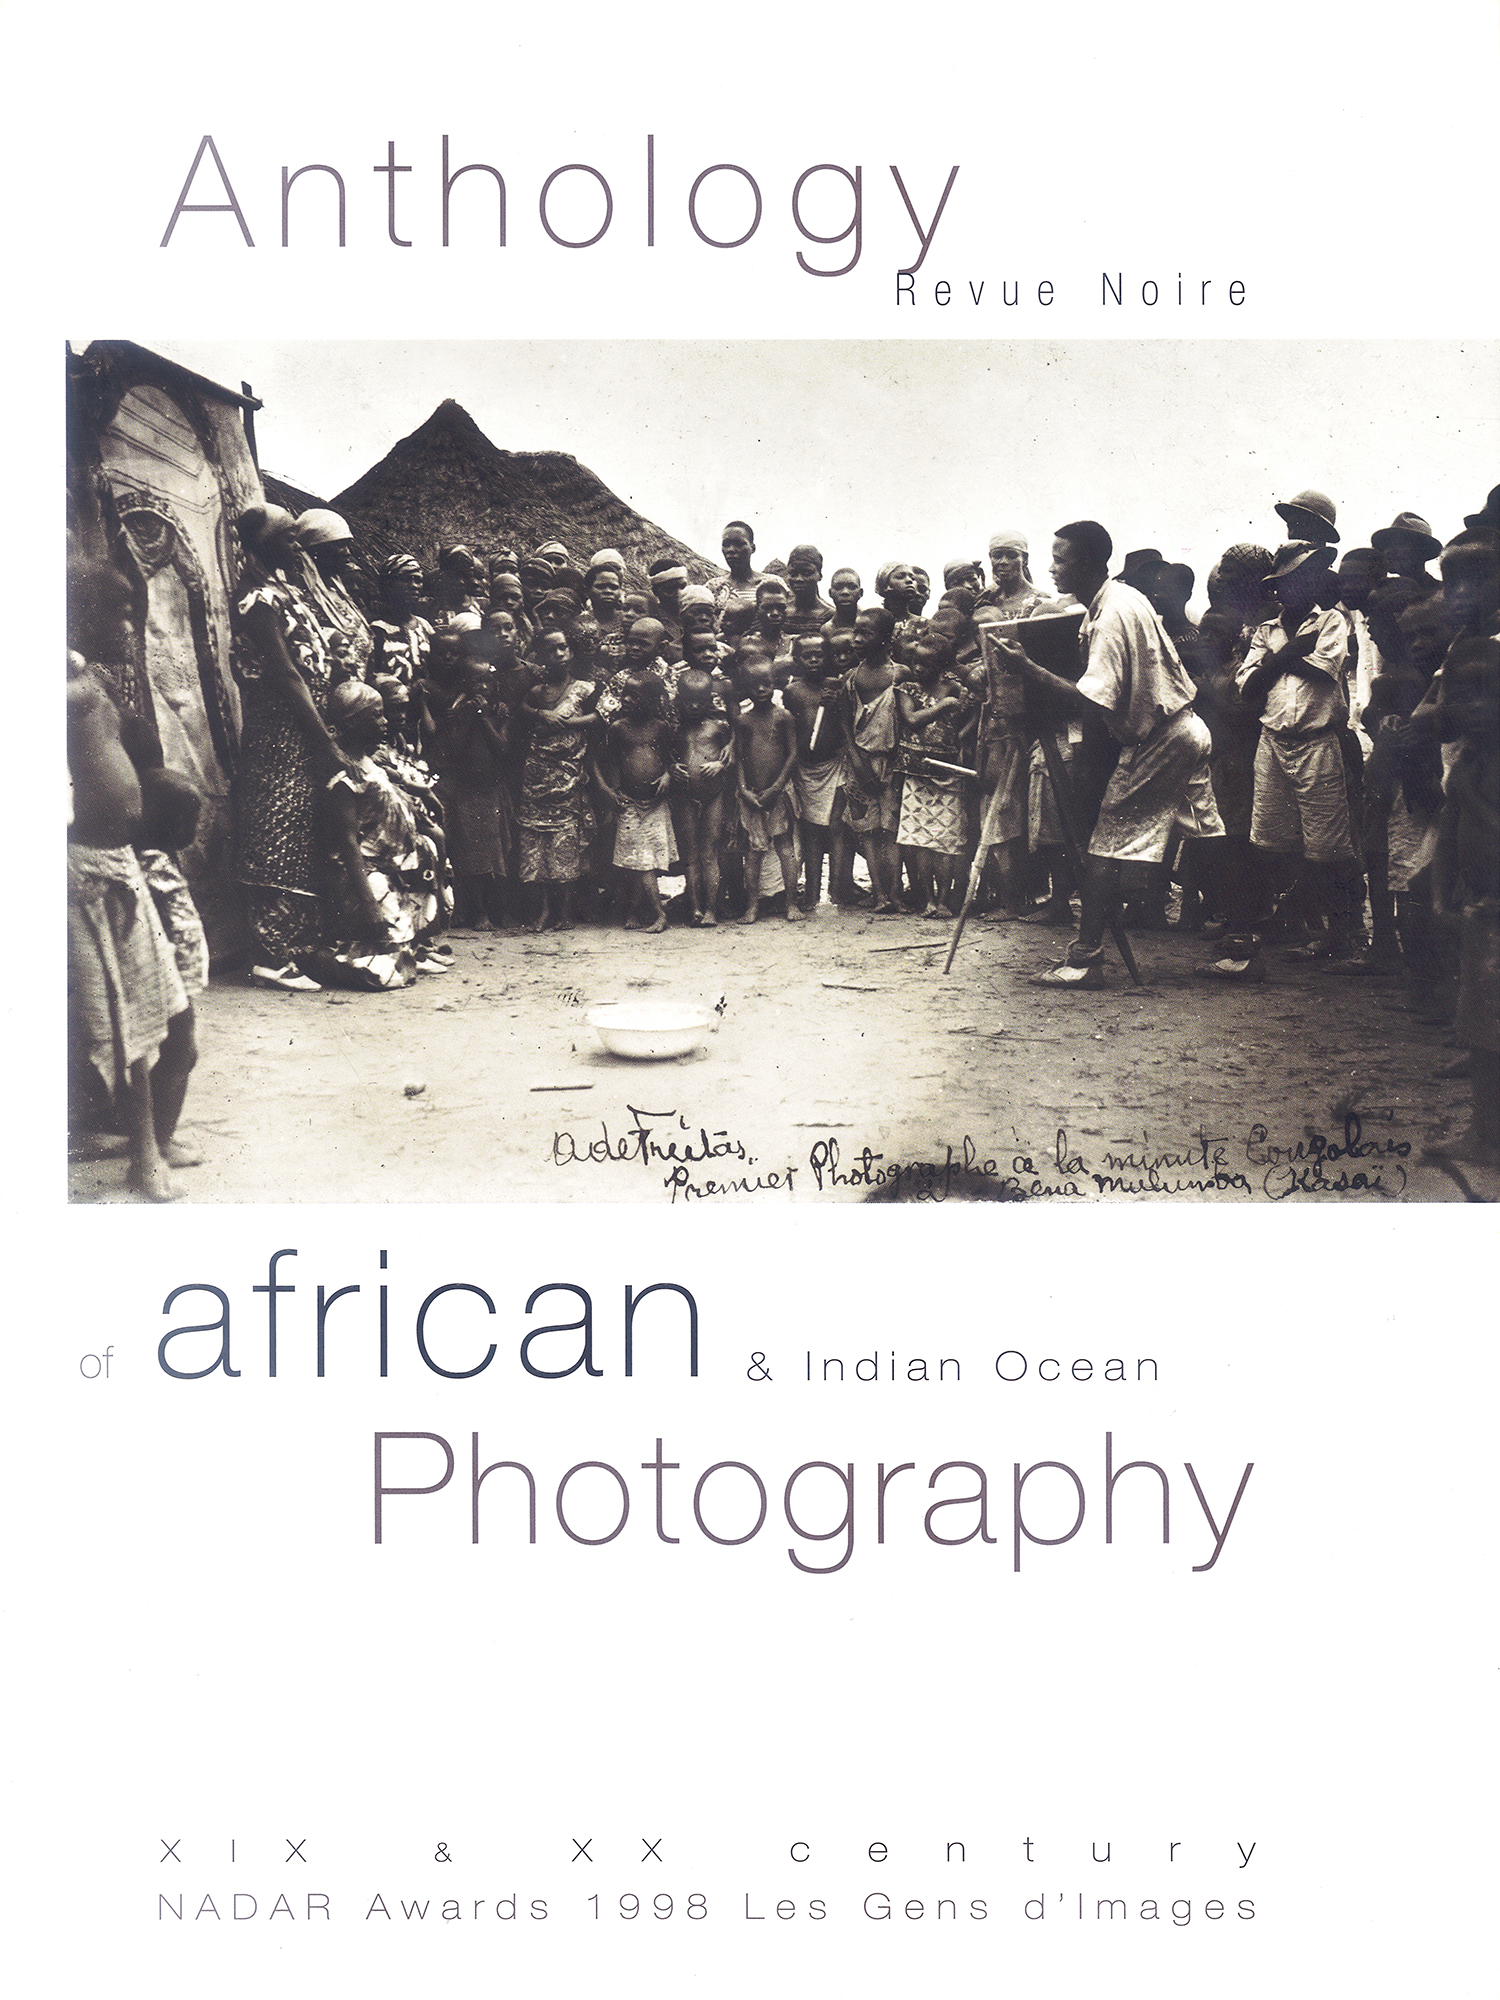 Book 'Anthology of African Photography', Revue Noire 1998